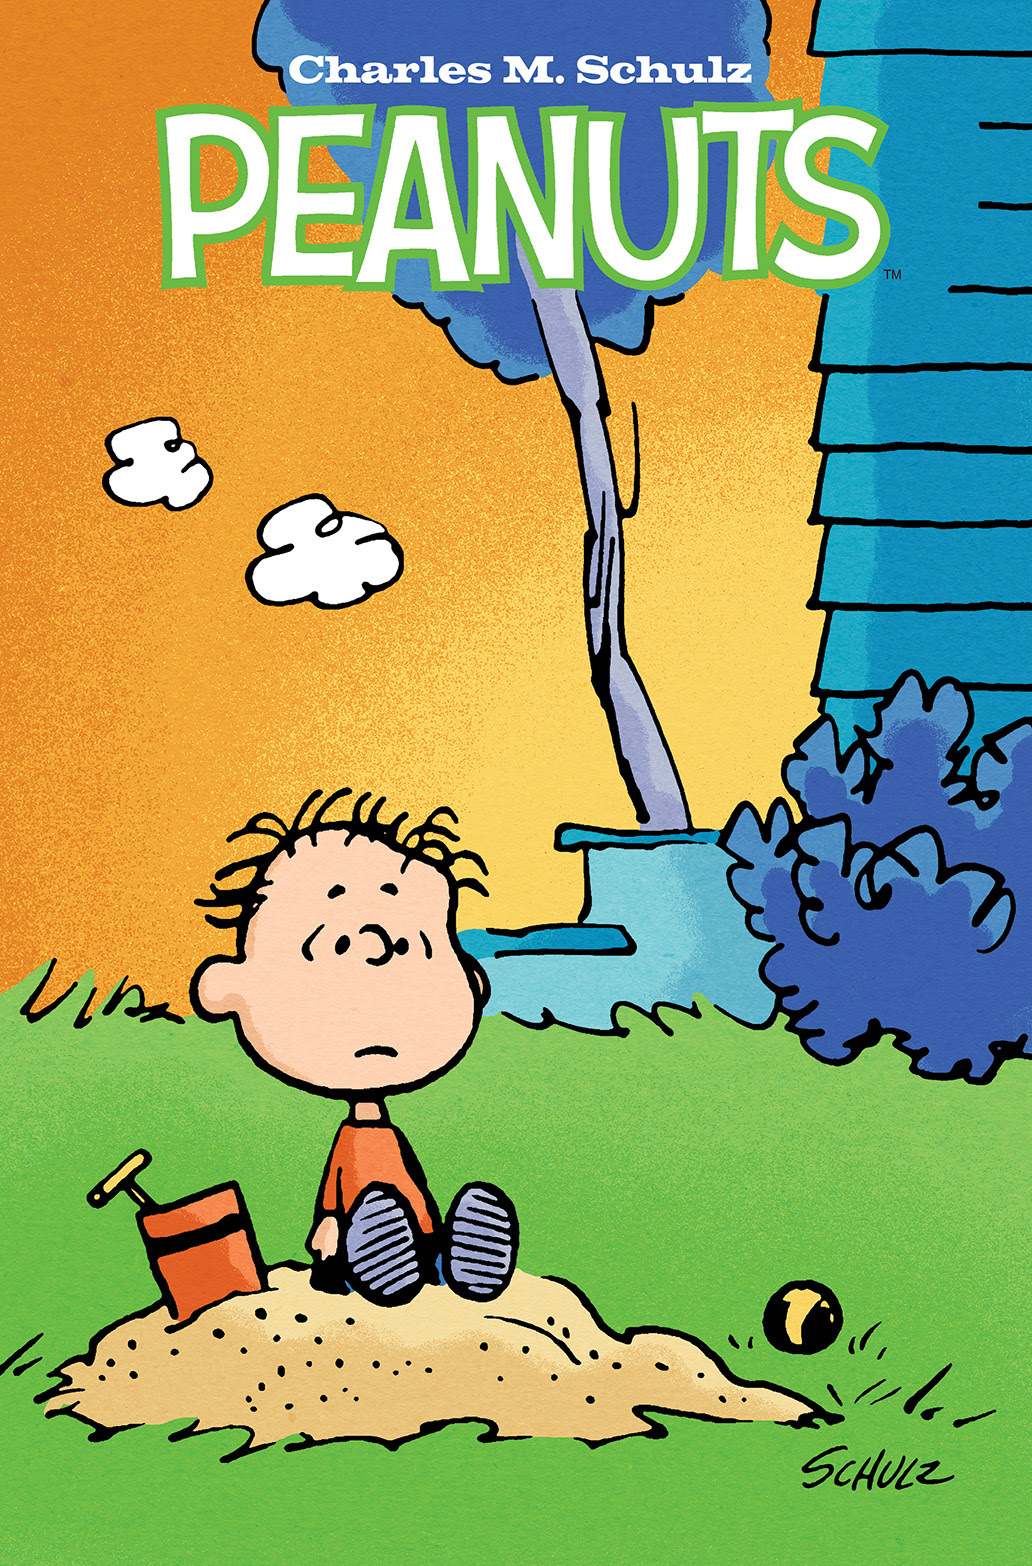 PEANUTS #21 Cover by Charles M. Schulz, Various